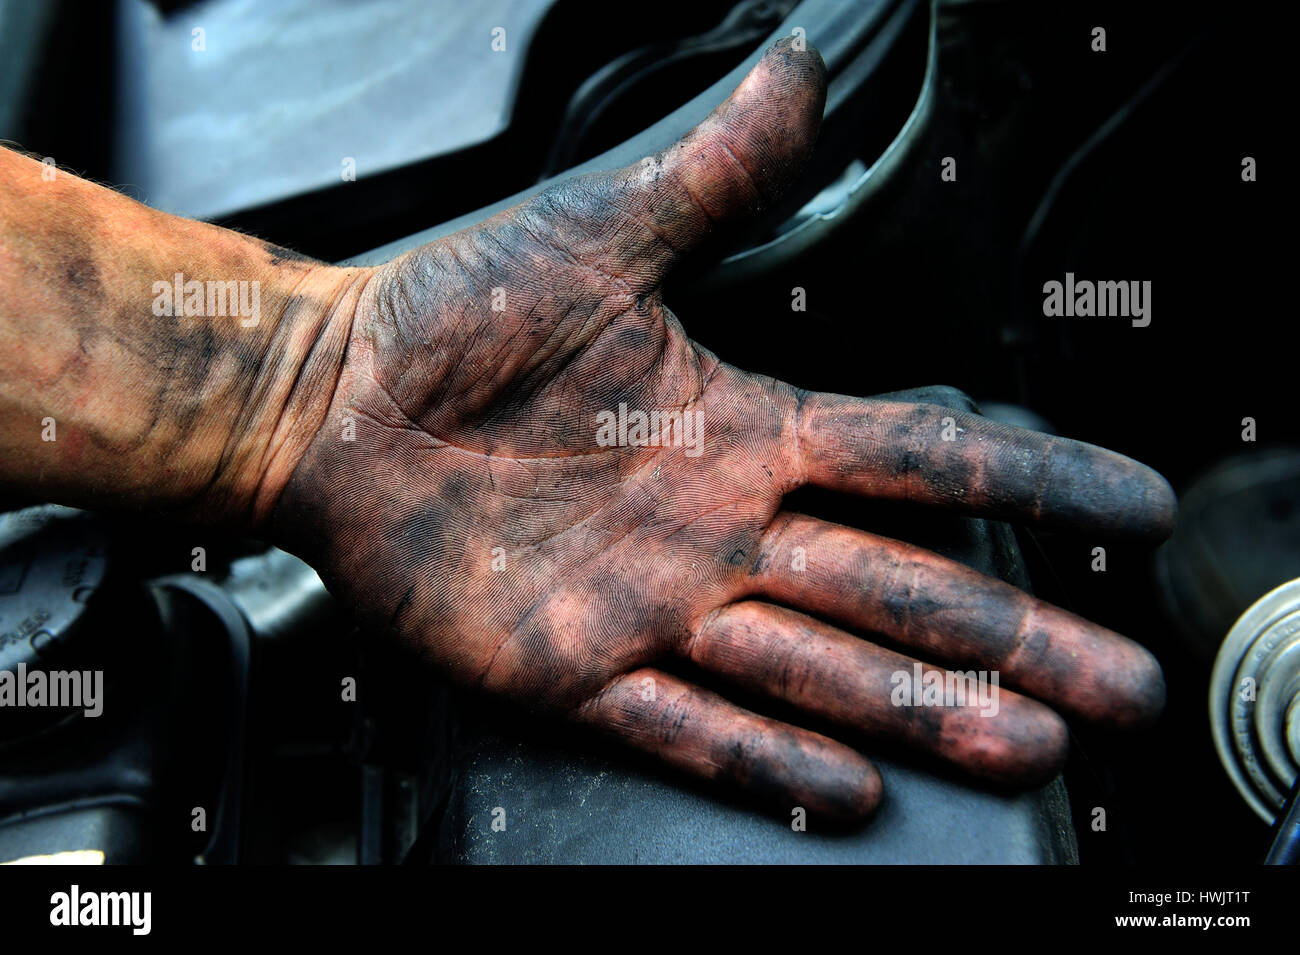 a person, a working, arm, black works, craftemployment, illegally employment, illicit workprofessional life, professionally, Stock Photo